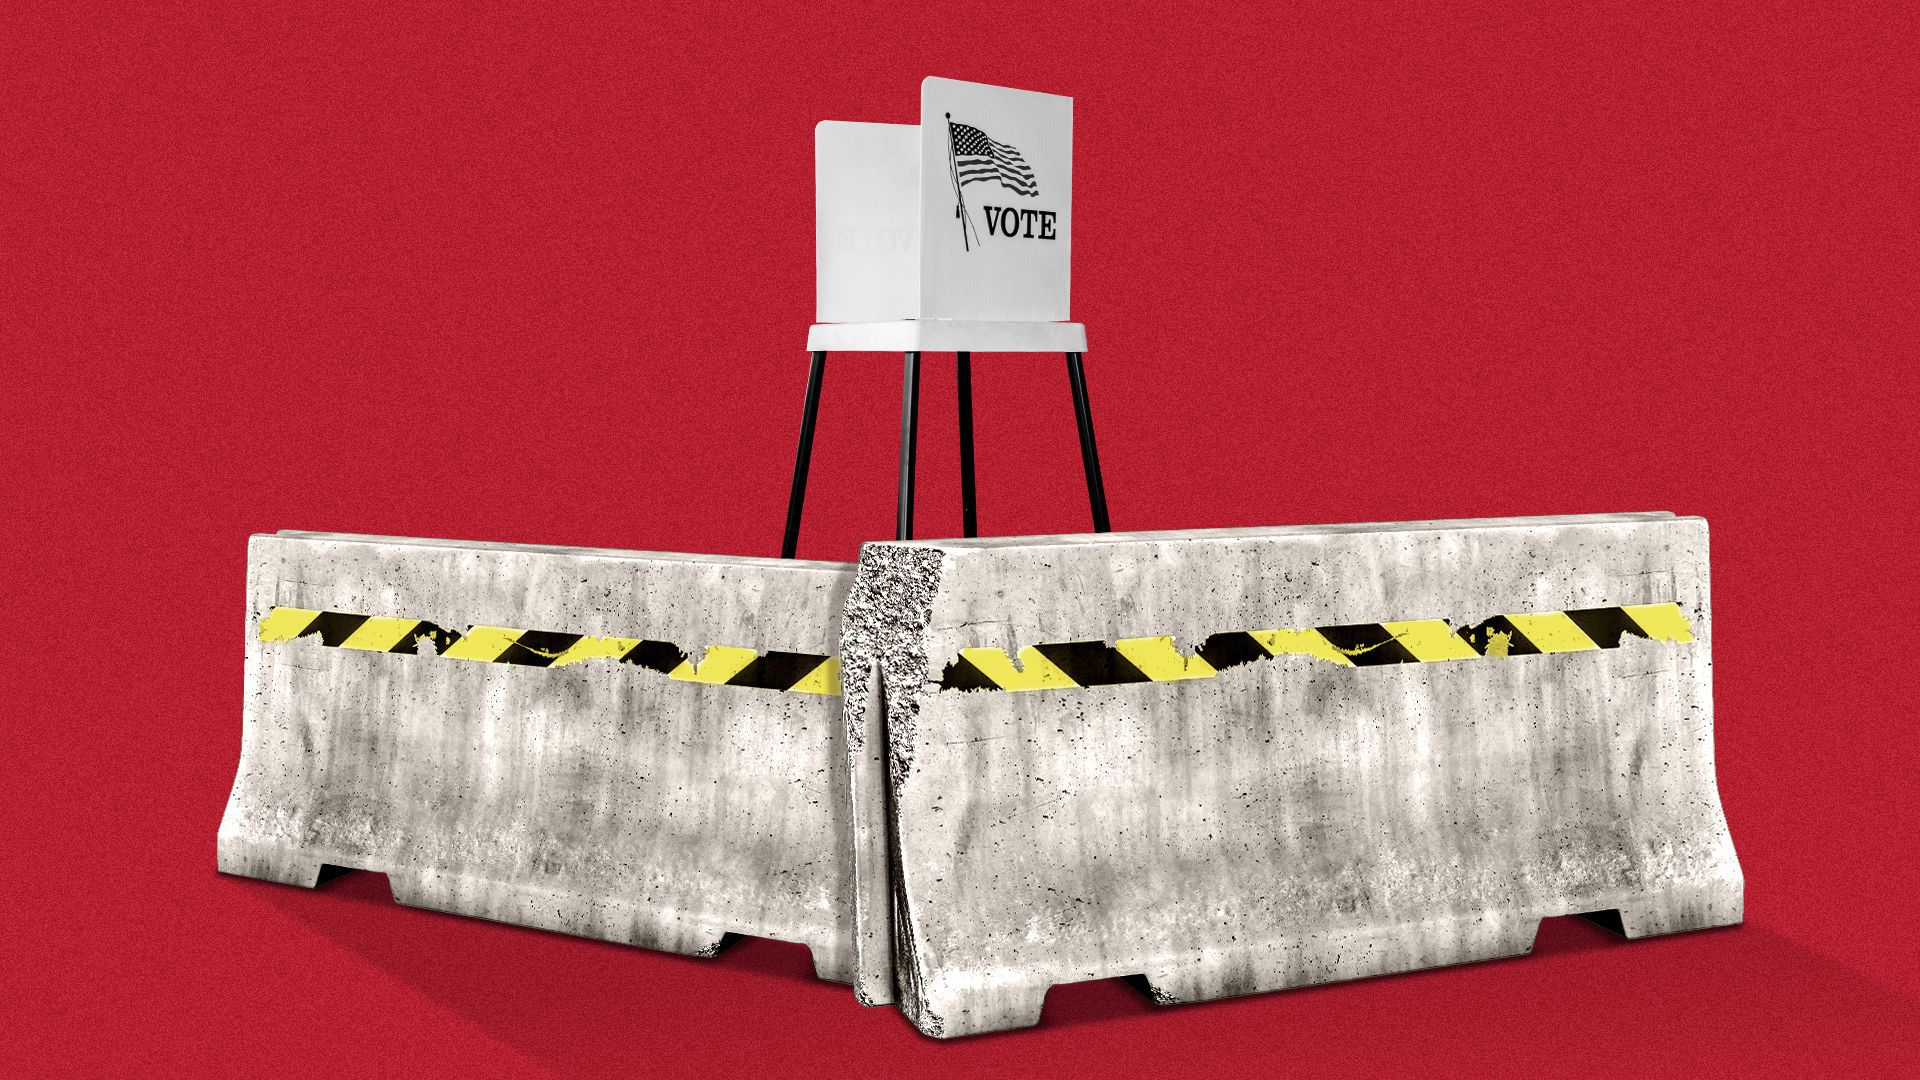 Illustration of a voting booth behind two concrete barriers.